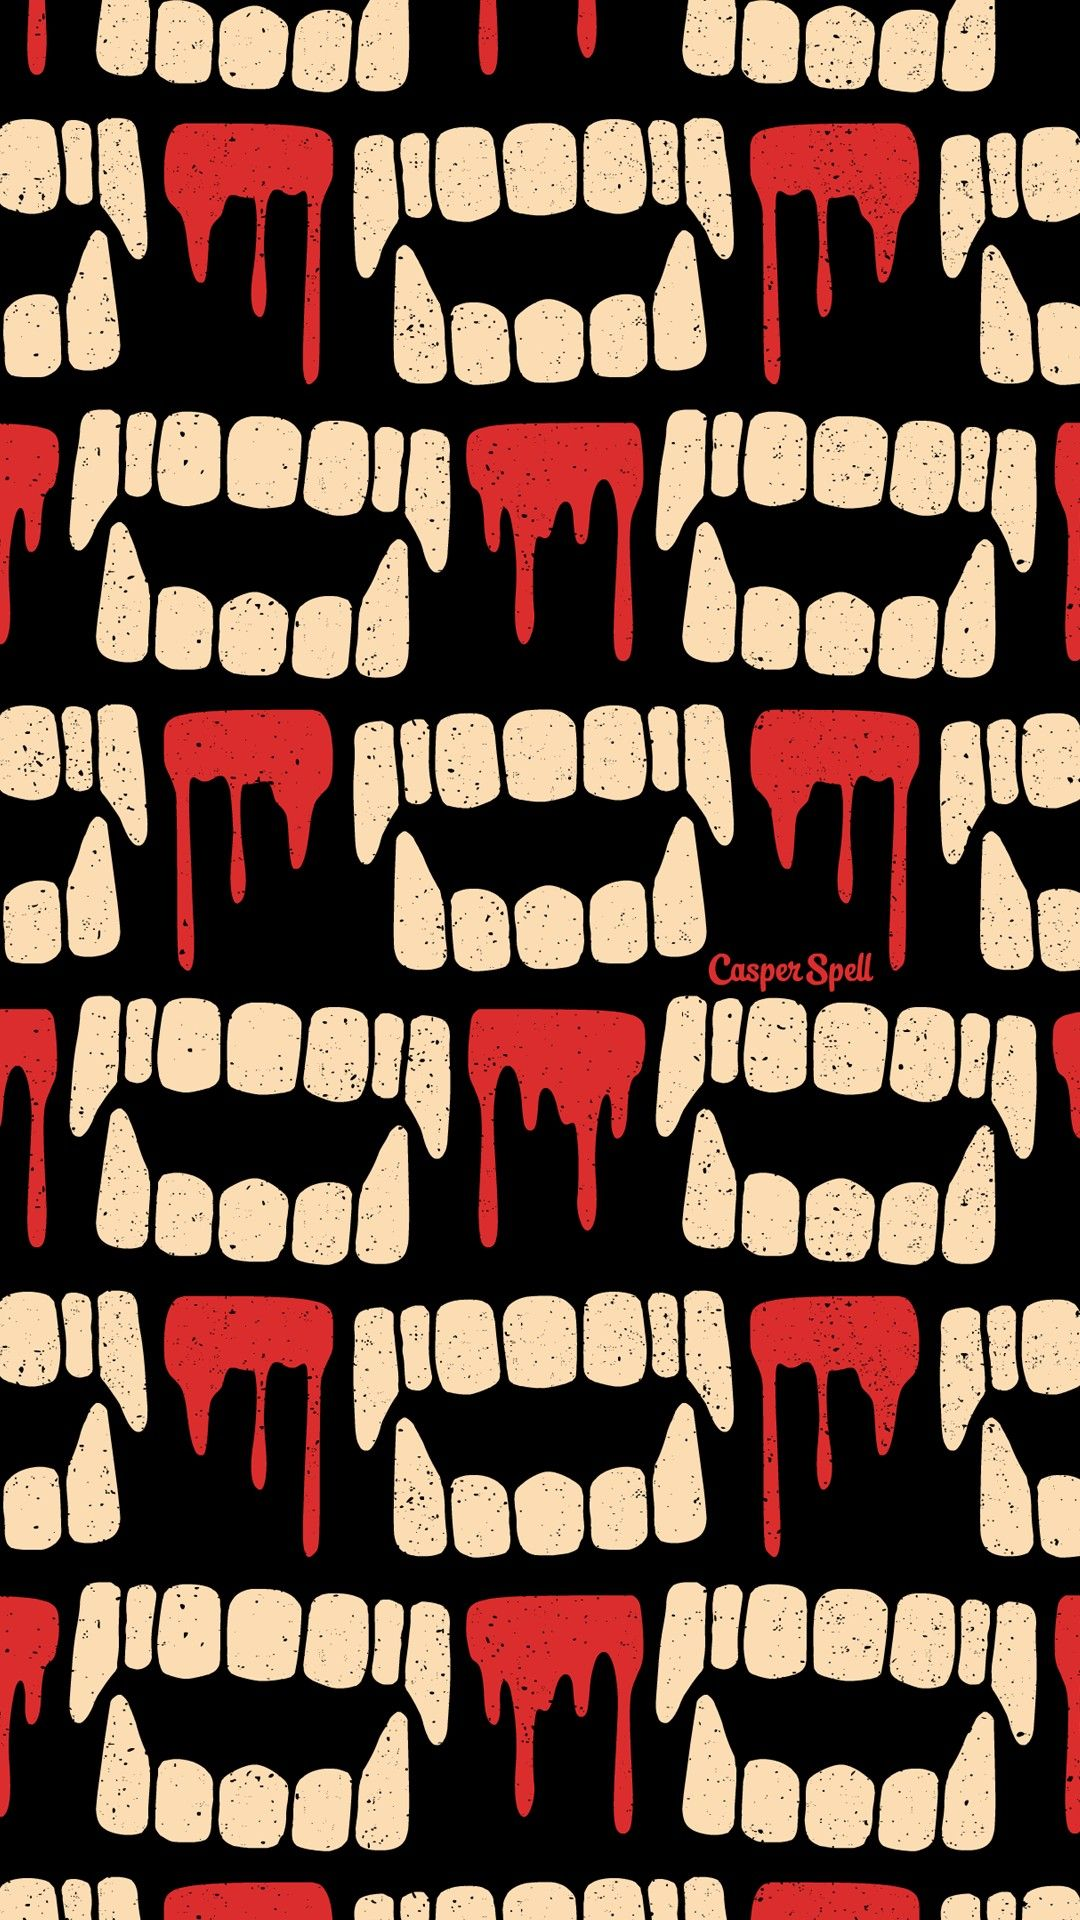 Vampire Teeth Repeat Pattern Wallpaper Halloween Cute Creepy Spooky Macabre Dark Ar Halloween Wallpaper Iphone Halloween Wallpaper Lock Screen Wallpaper Iphone